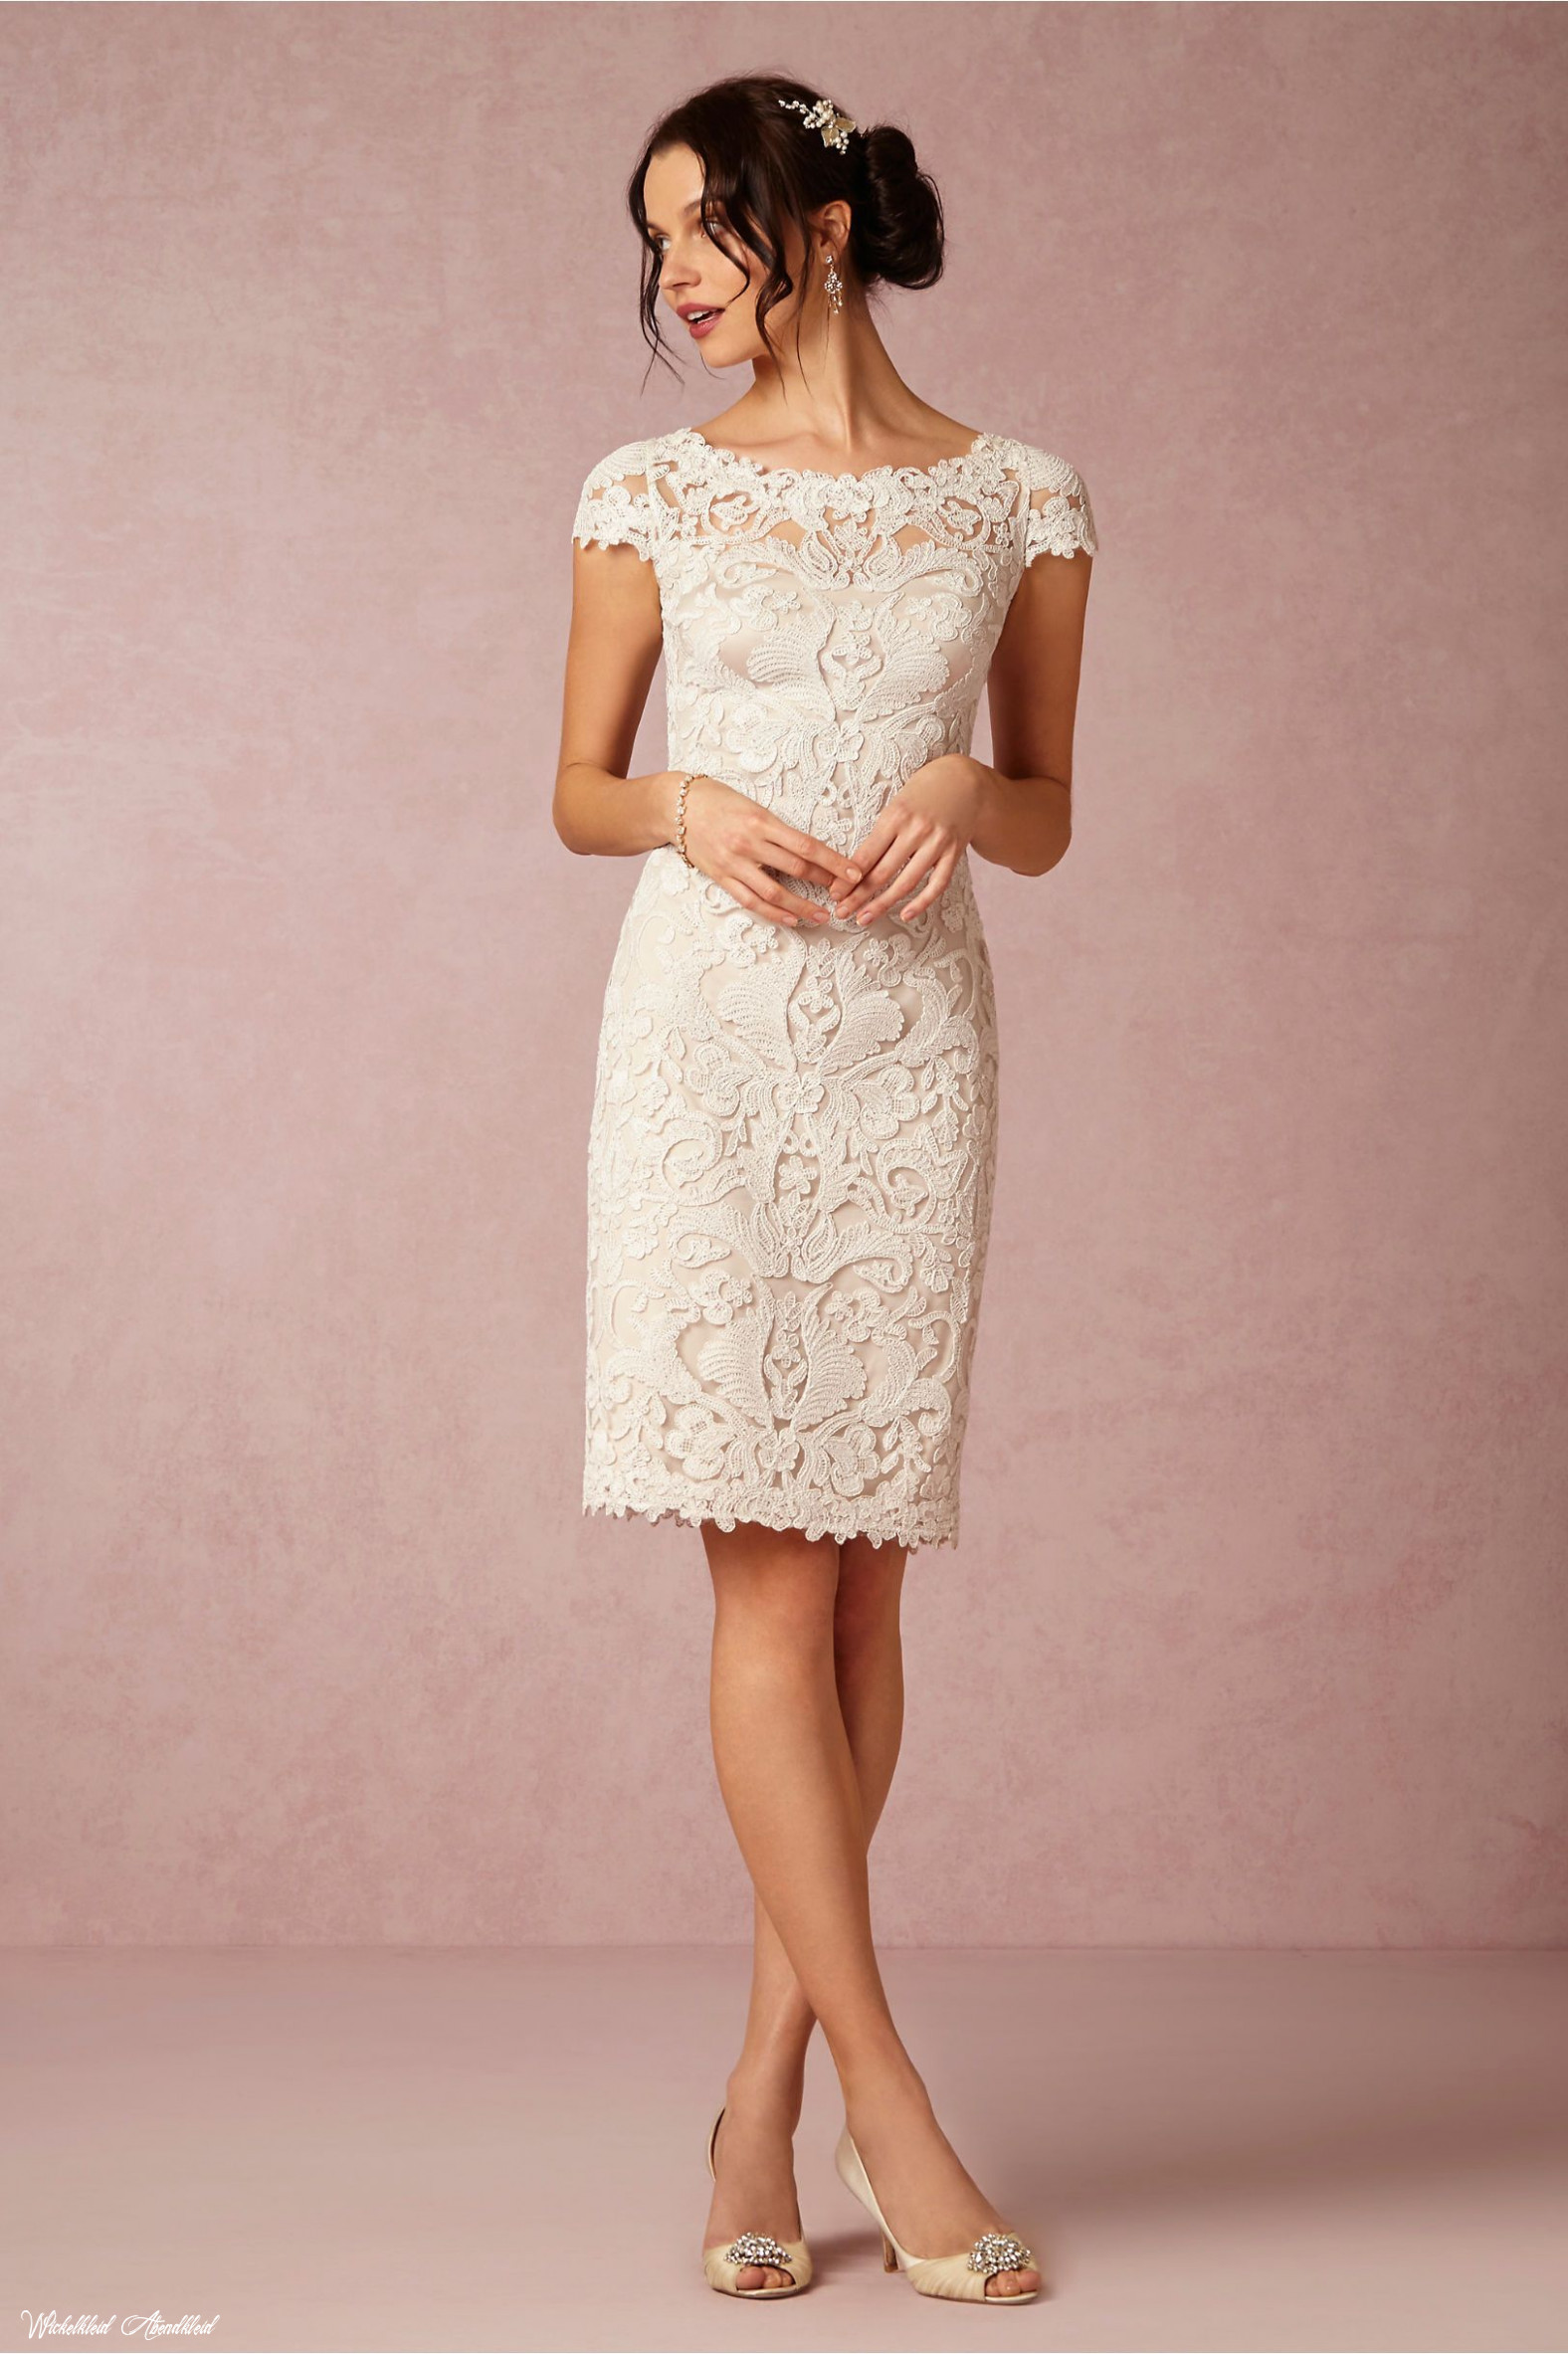 hadley dress simple wedding dress short, bride reception dresses